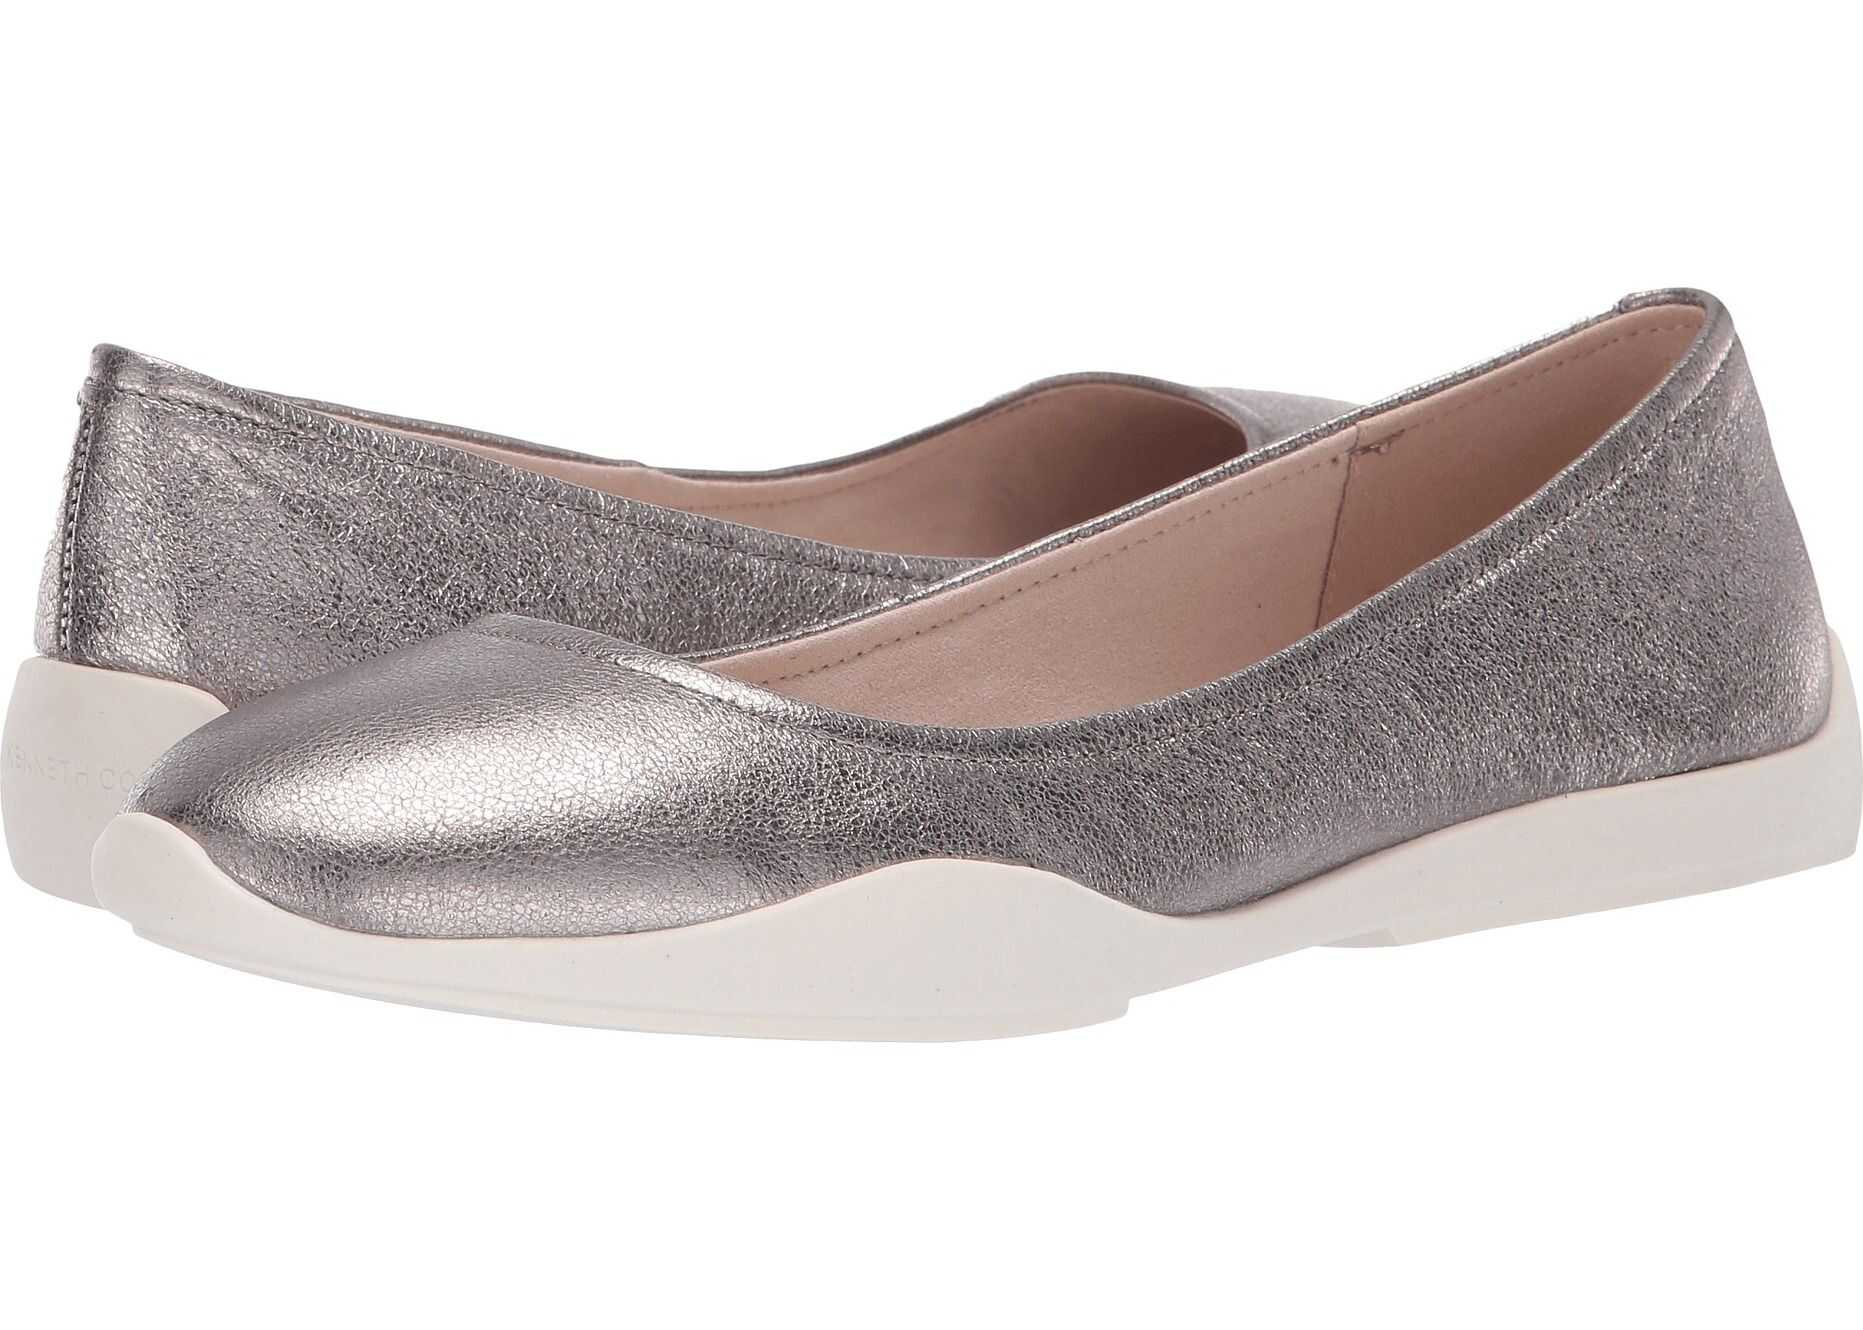 Kenneth Cole New York Vida Pewter Metallic Leather